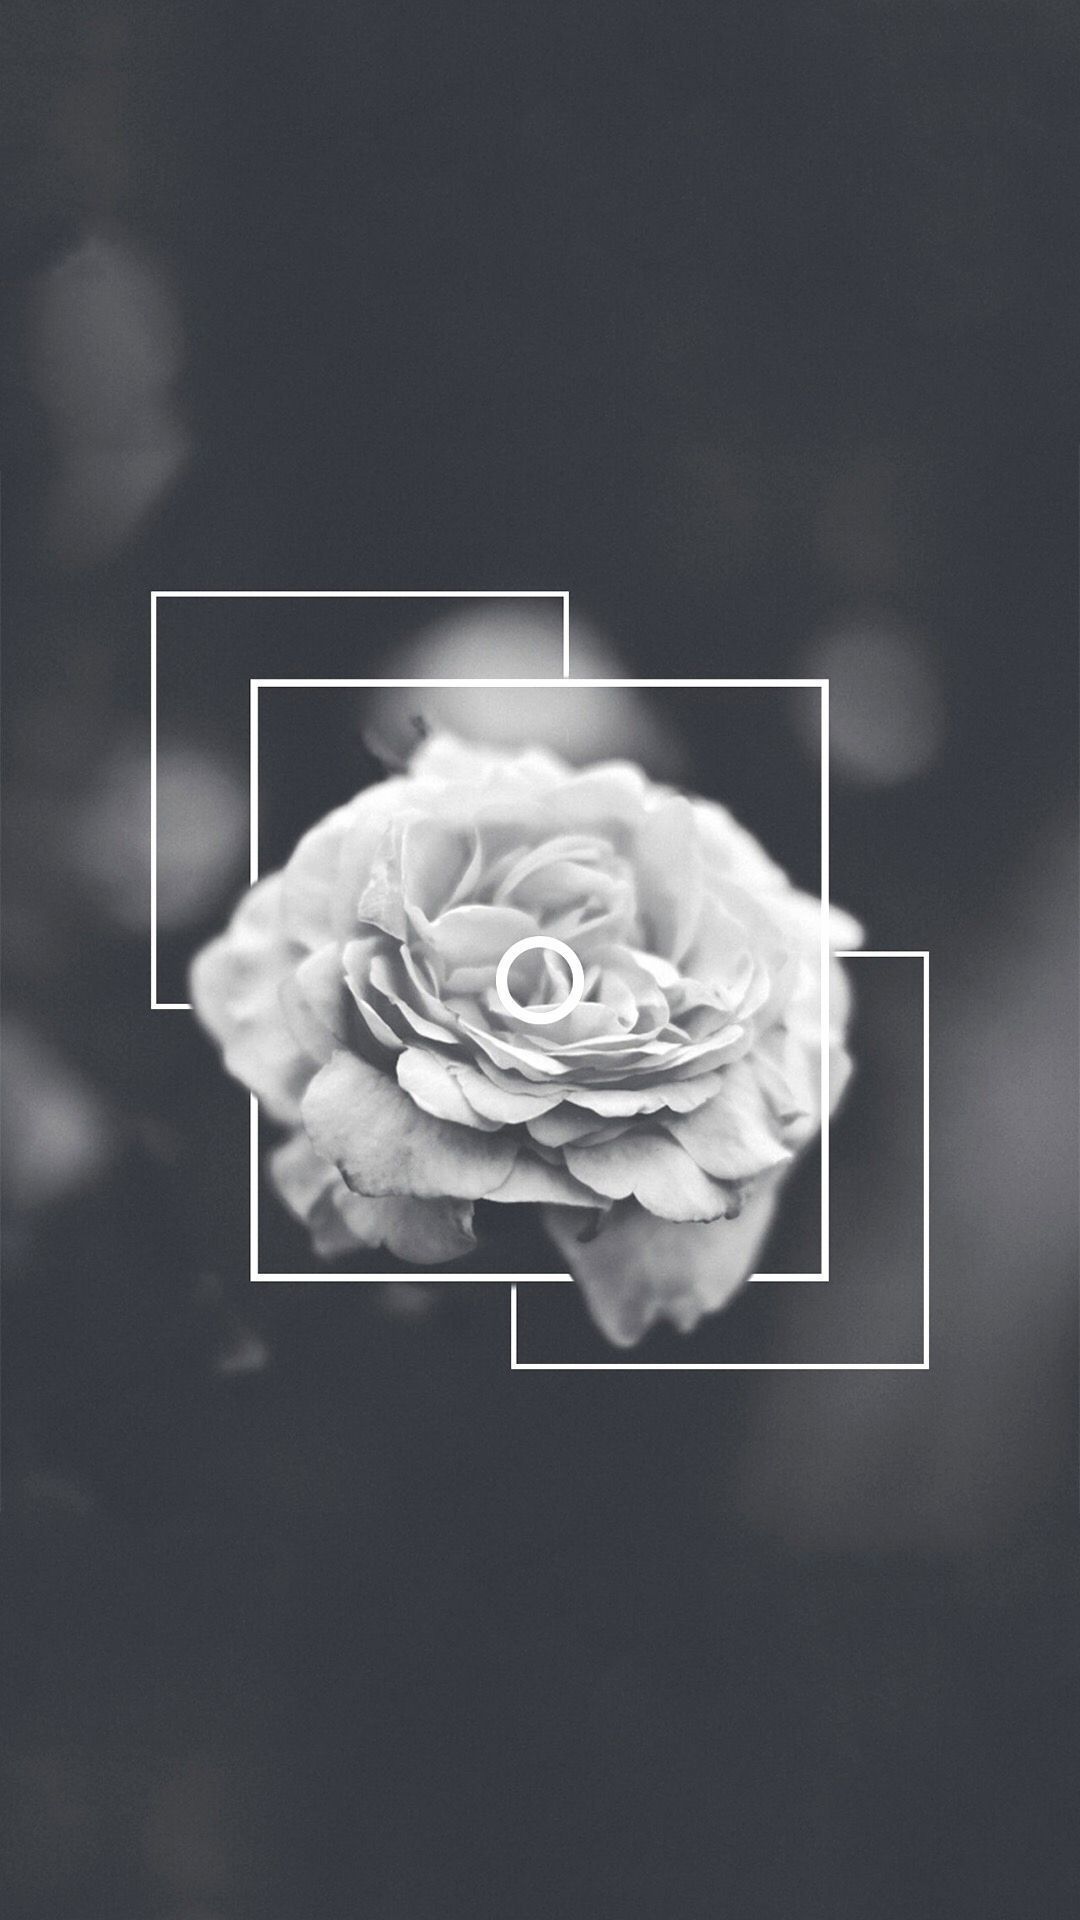 130 Flower Aesthetic Android Iphone Desktop Hd Backgrounds Wallpapers 1080p 4k Wallpaper Iphone Tumblr Grunge Flower Phone Wallpaper Tumblr Iphone Wallpaper